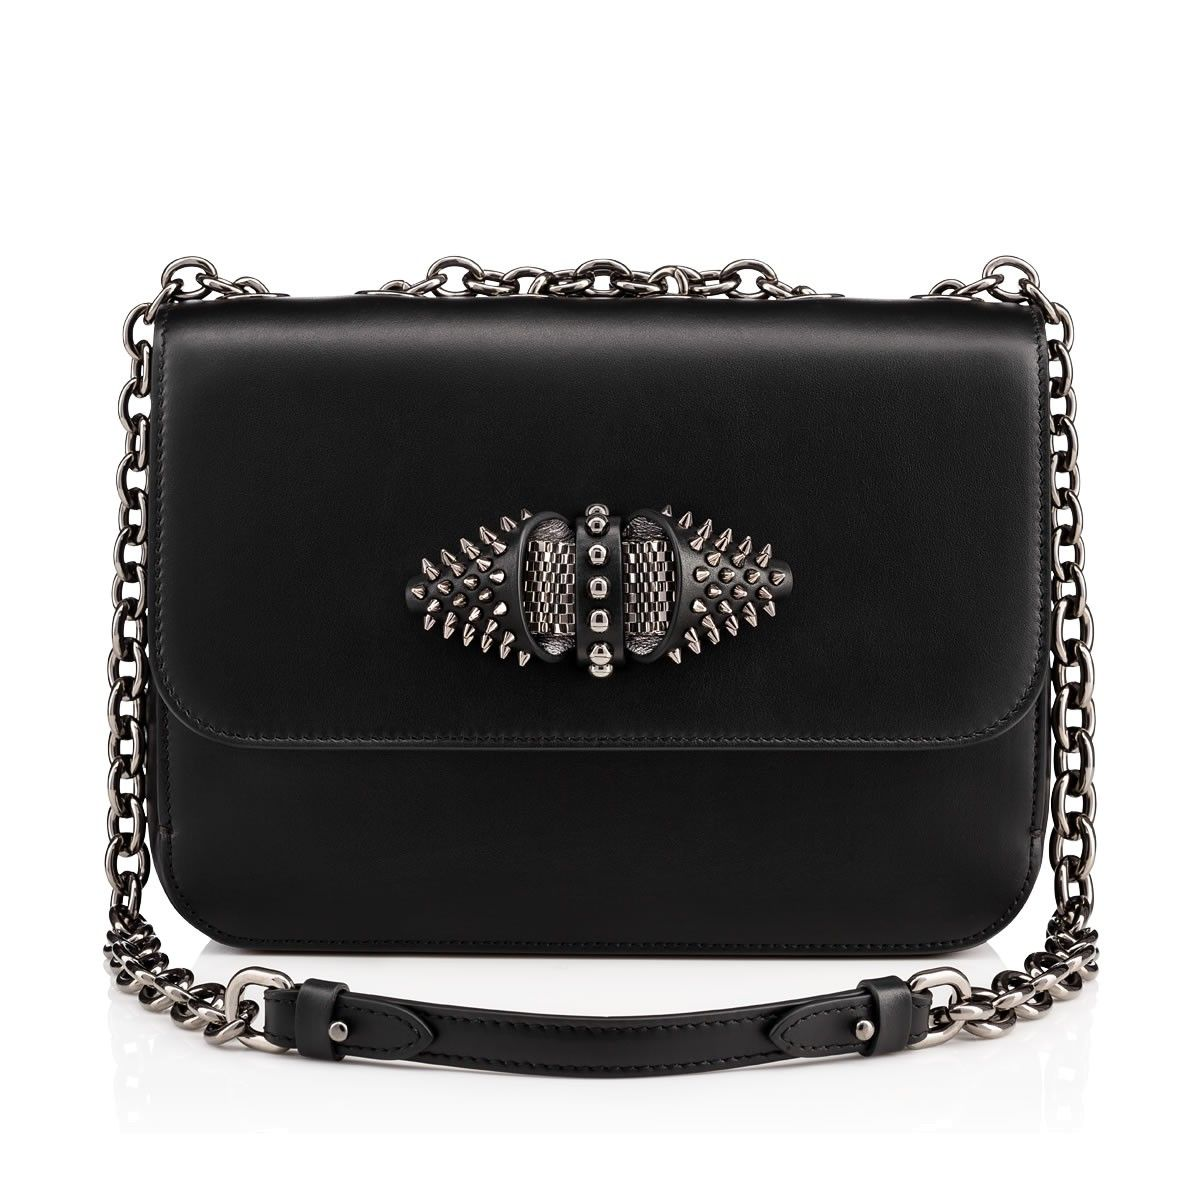 f7135b356ba Bags - Sweet Charity Medium Chain Bag - Christian Louboutin | Purses ...